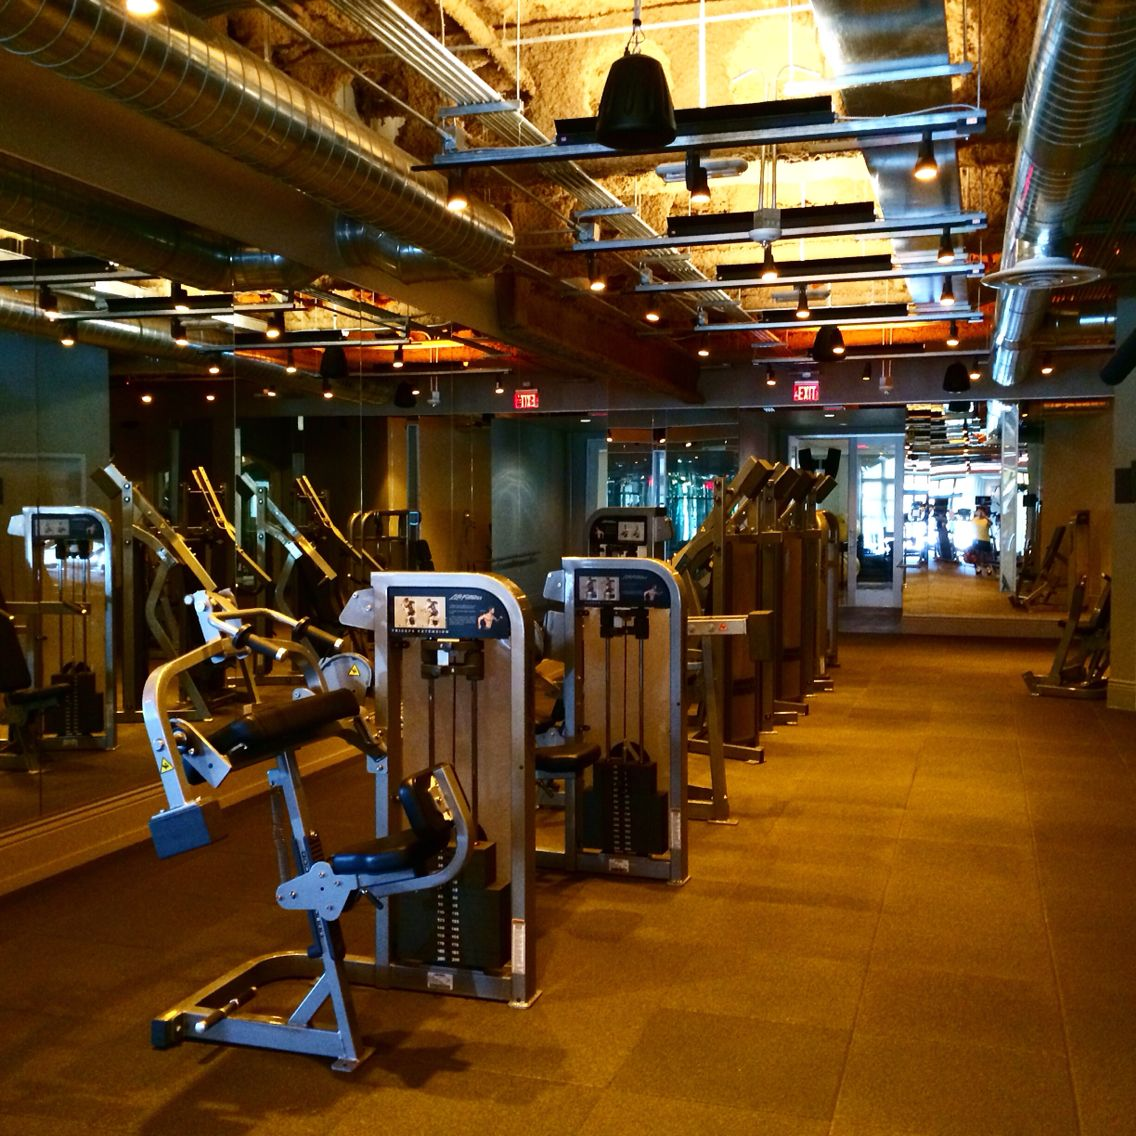 Home Gym Design Ideas: David Barton Gym LifeFitness Circuit Zone This Morning